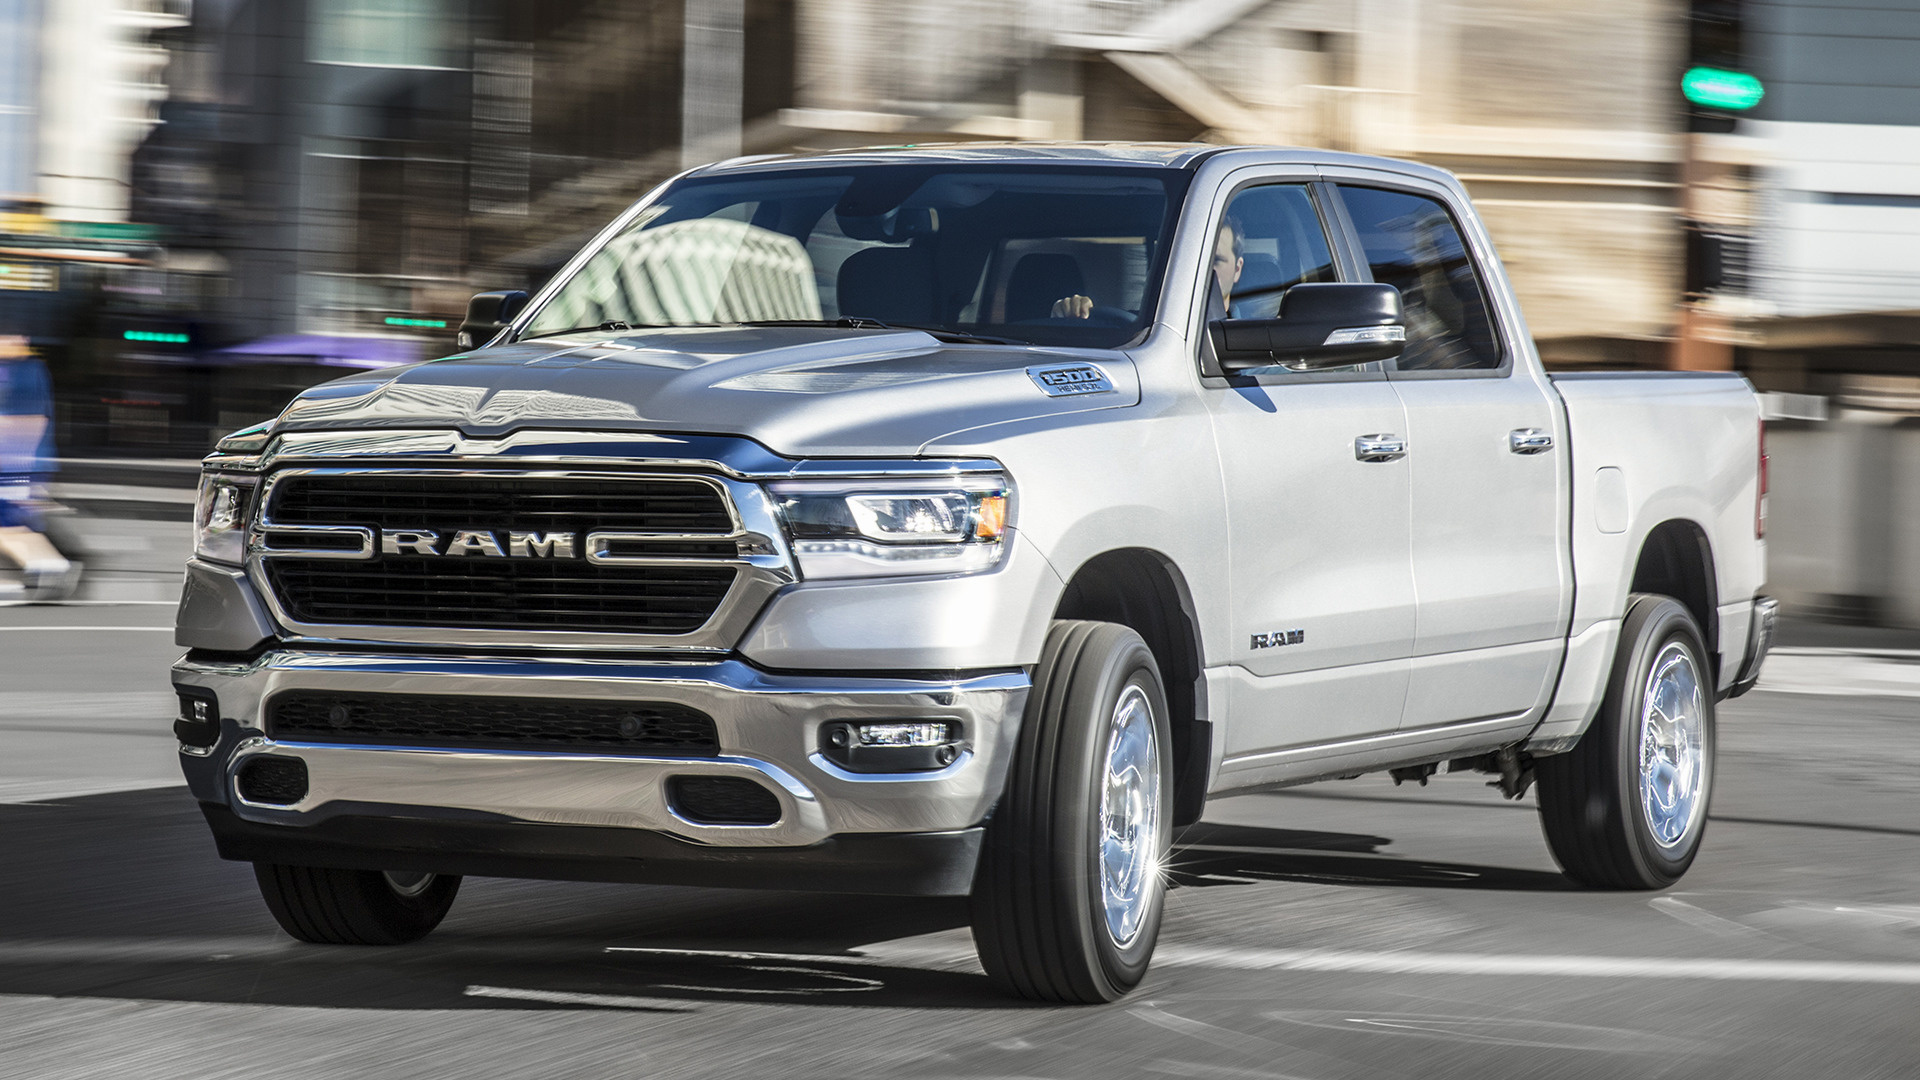 Ram Big Horn Crew Cab Short Wallpaper Hd on 02 Ram 1500 Quad Cab